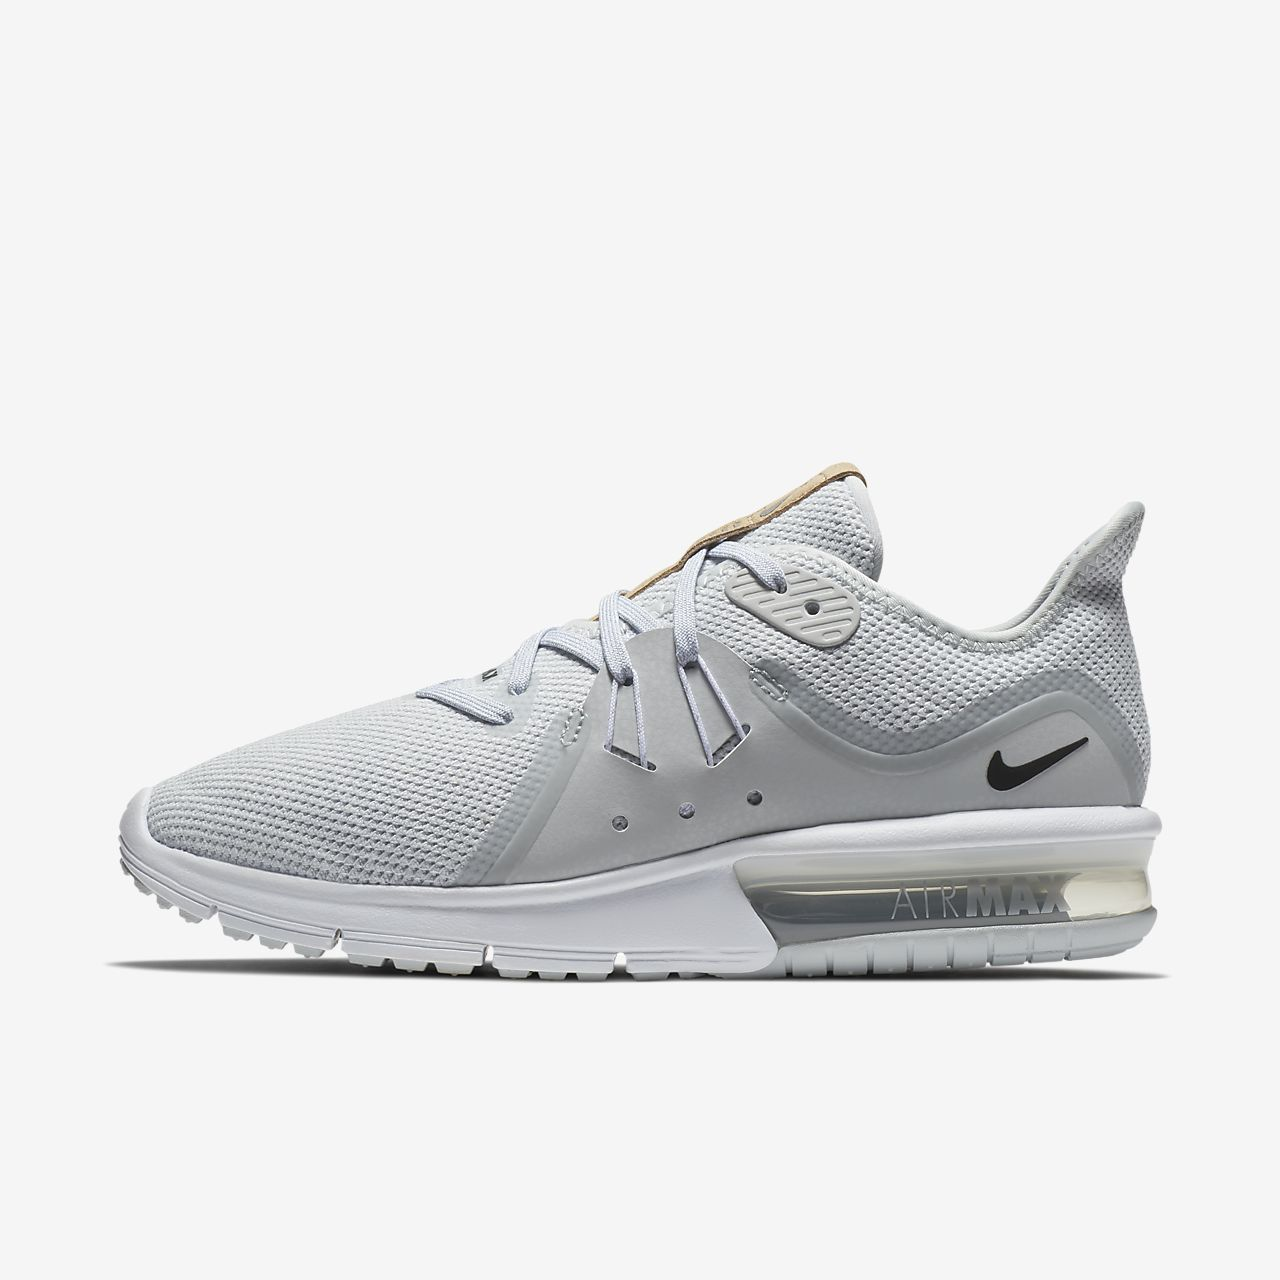 c7fb900a11f Nike Air Max Sequent 3 Women s Shoe. Nike.com